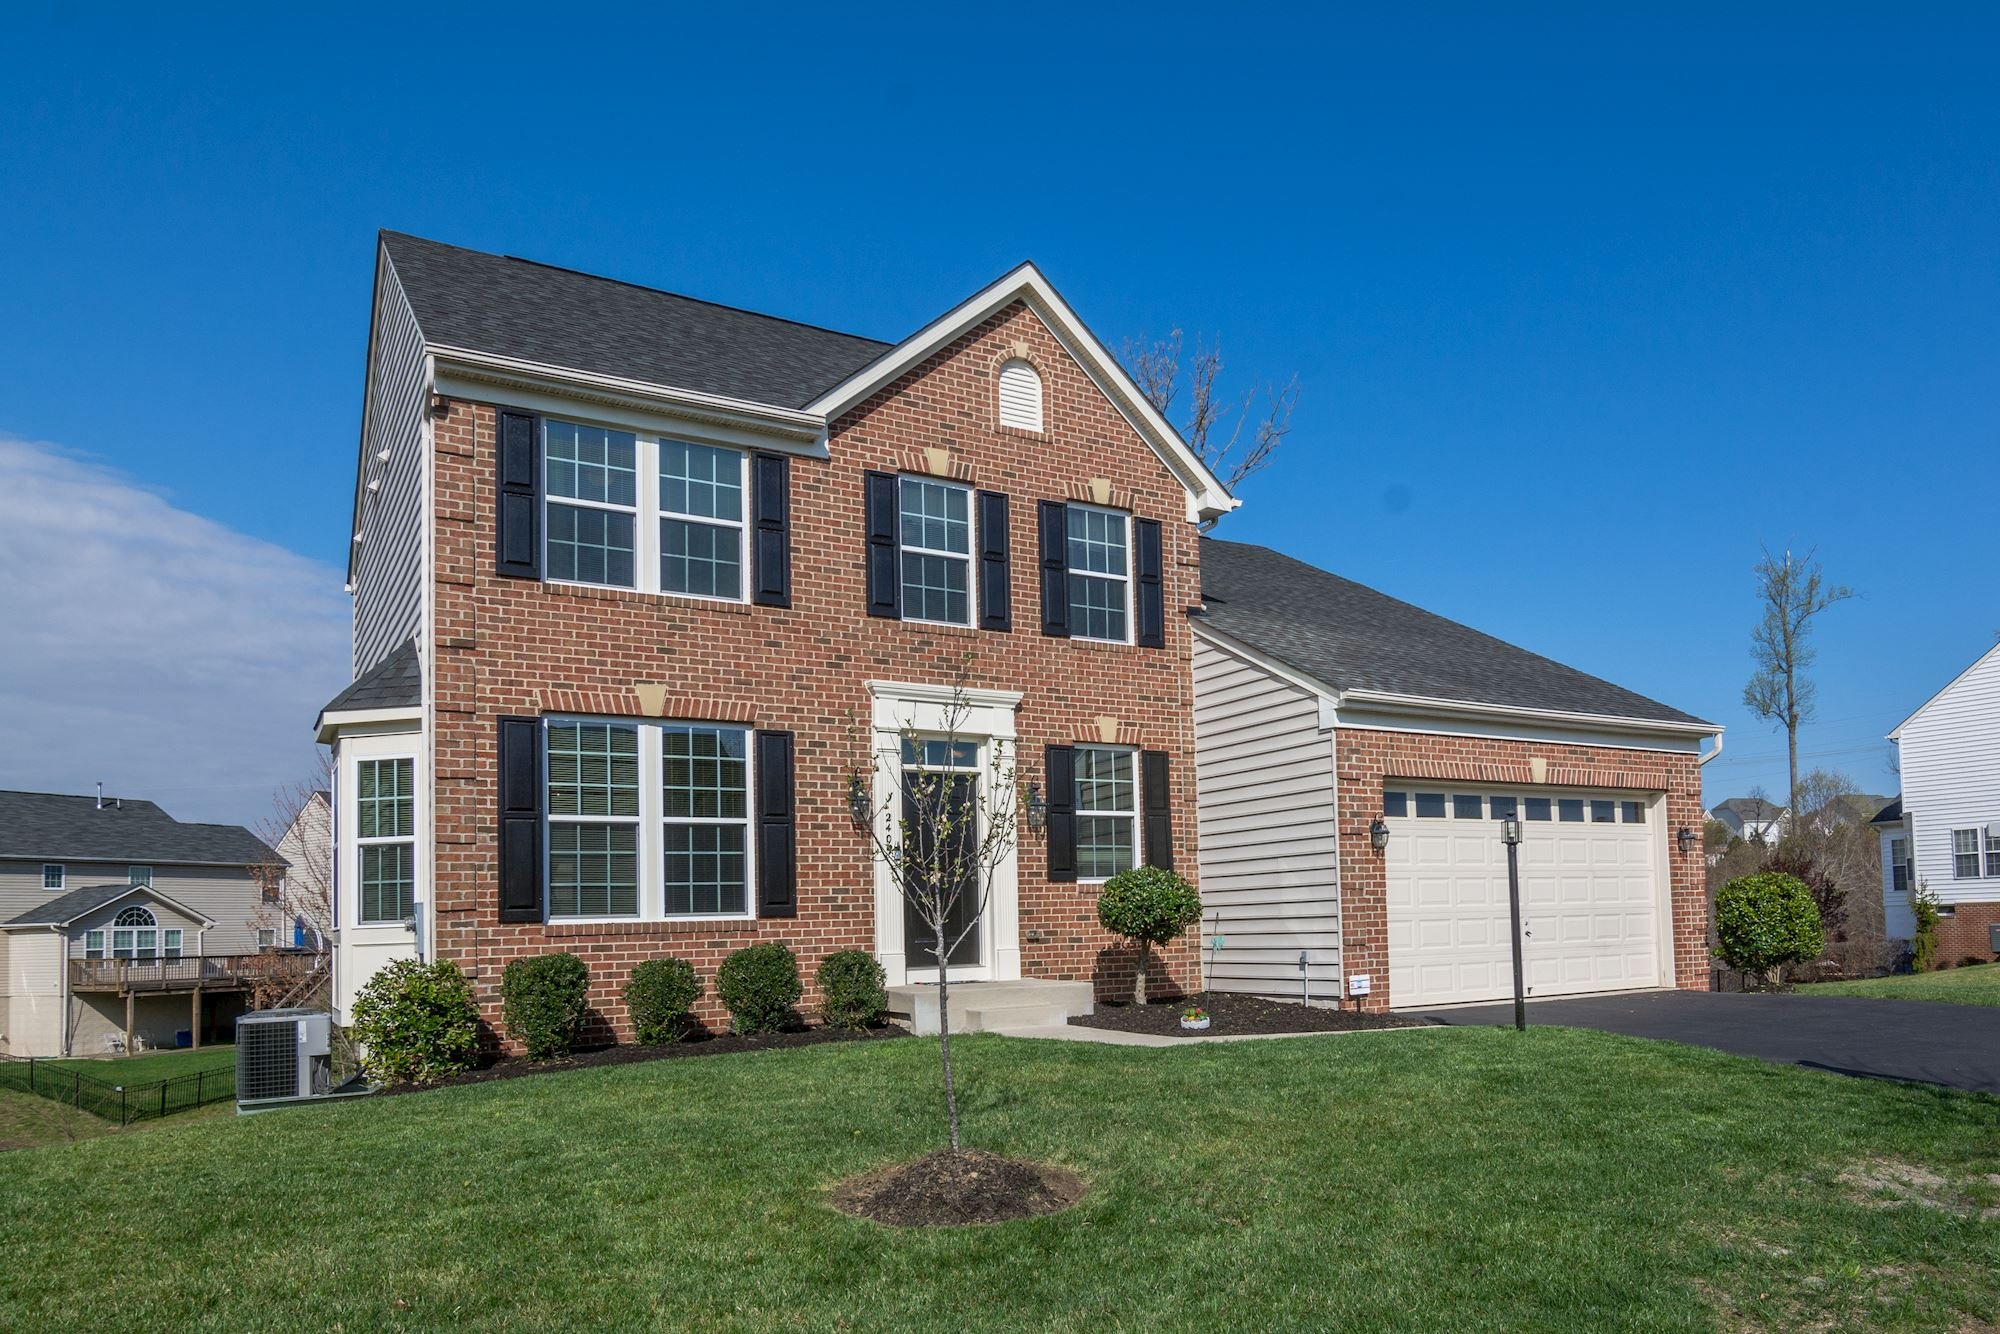 NEW LISTING: 4 BD Corner Lot Home in Woodbridge,VA